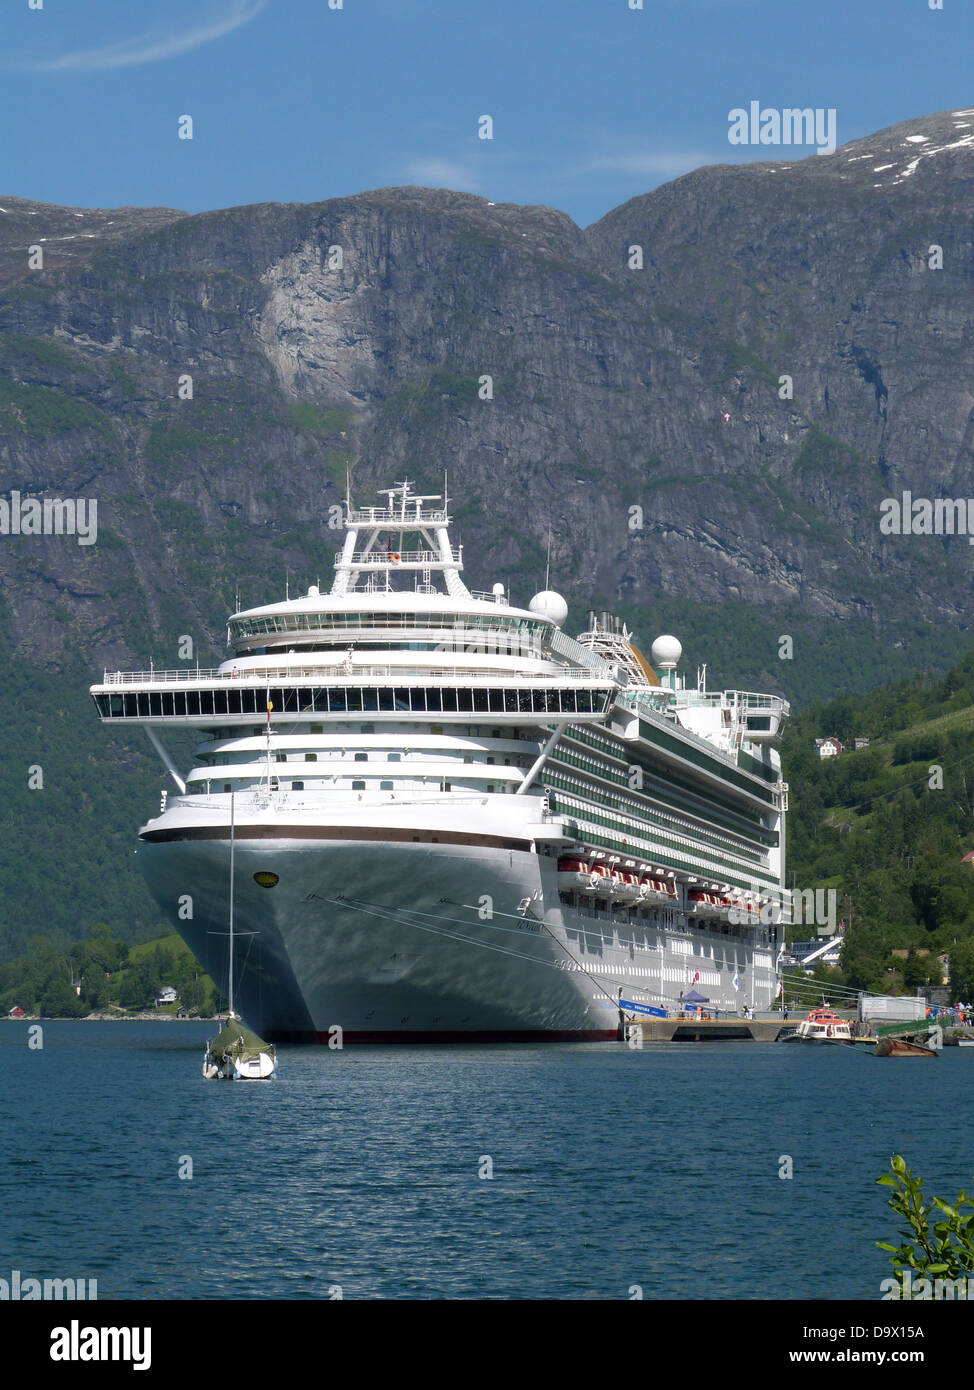 P&O Cruise ship Ventura at Berth in Olden, Norwegian Fjords 2013. - Stock Image